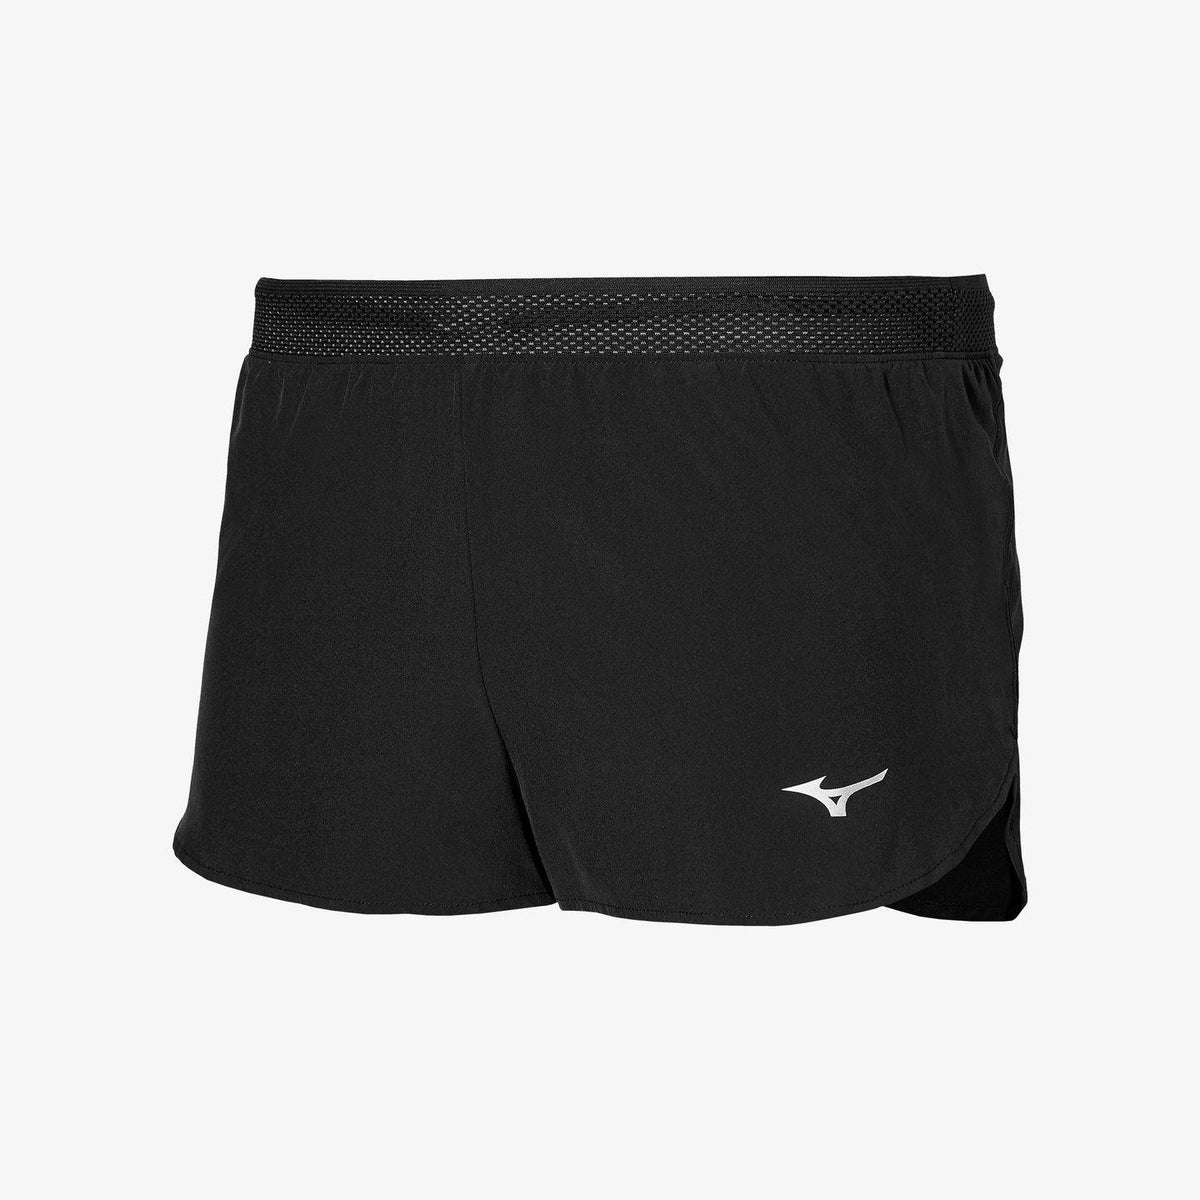 Mizuno Aero Split 1.5 Short Mens